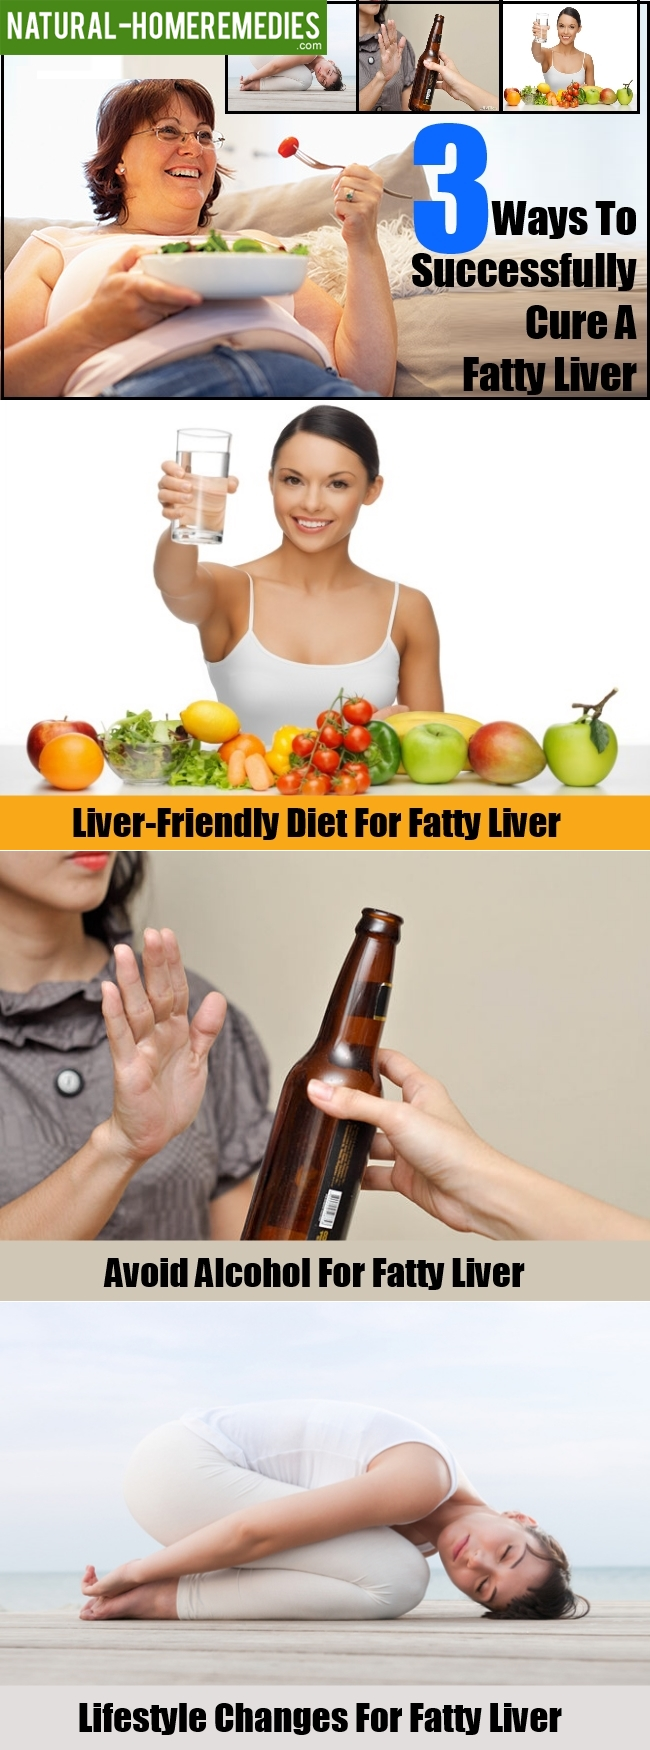 3 Ways To Successfully Cure A Fatty Liver